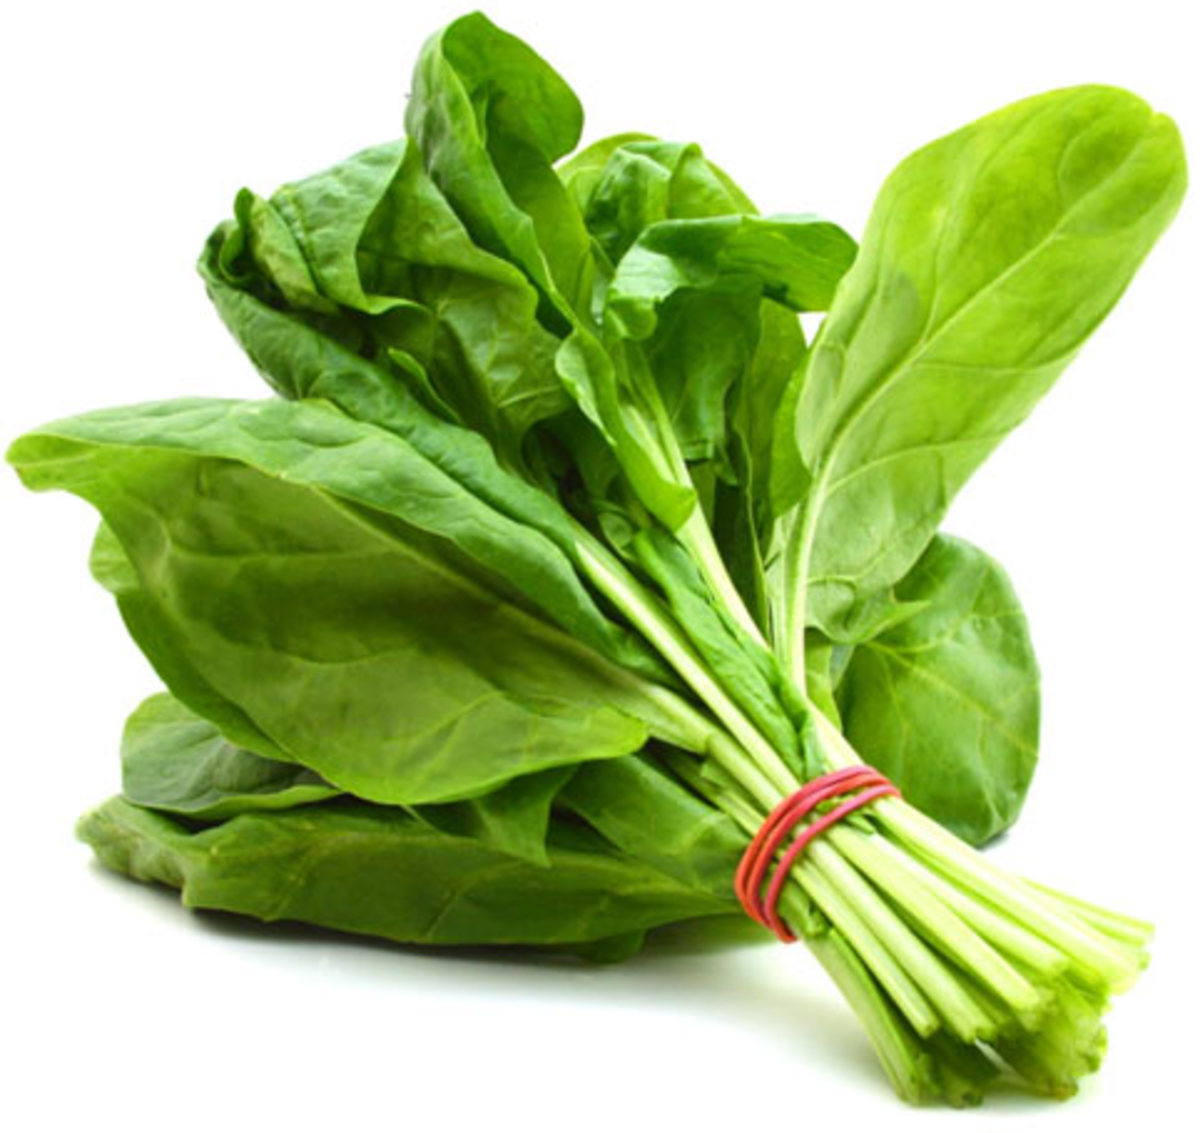 Yes super food spinach should be bought organic!